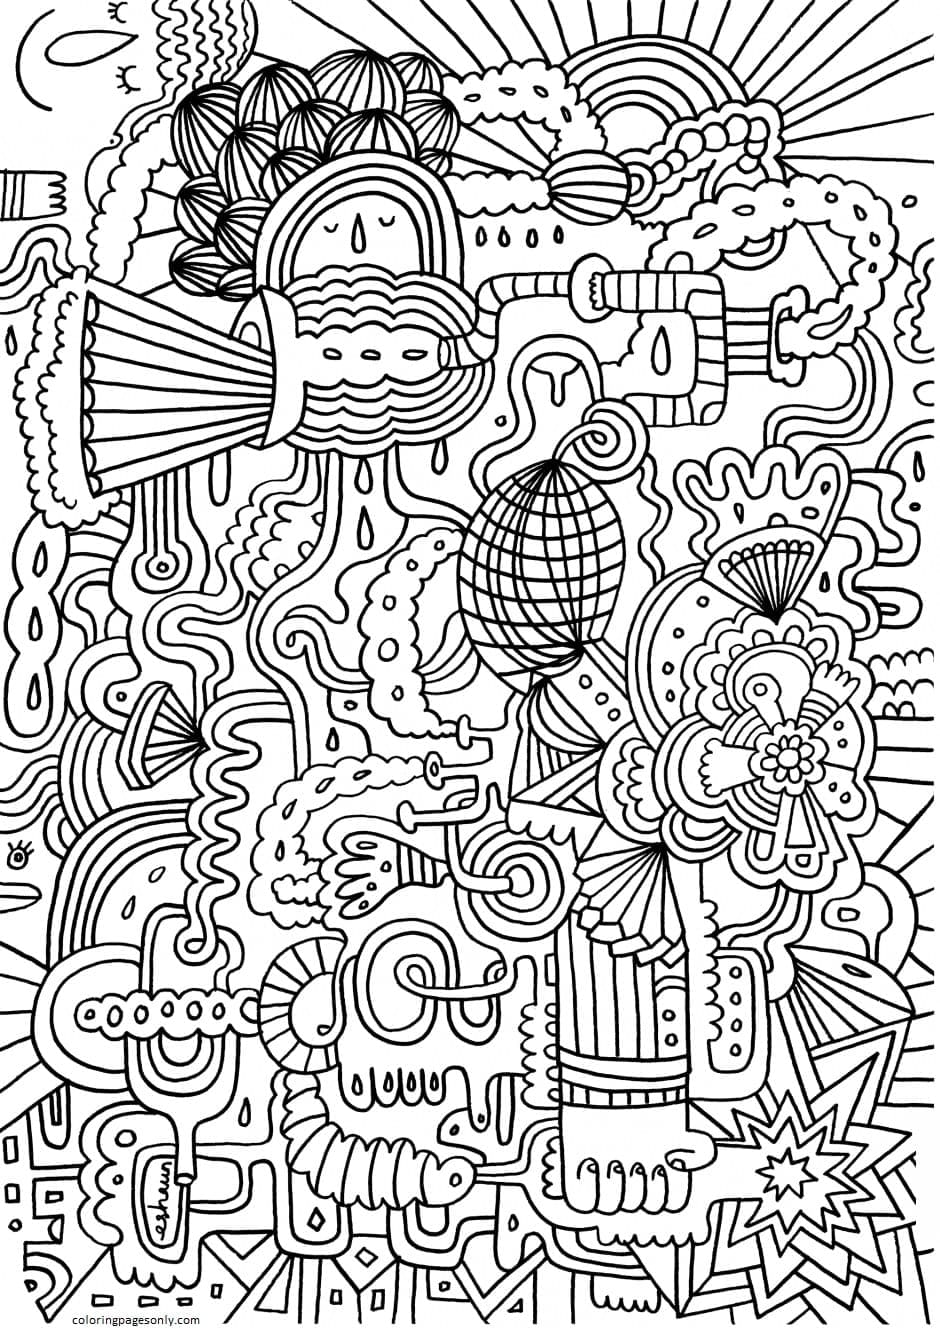 Really Hard Coloring Page